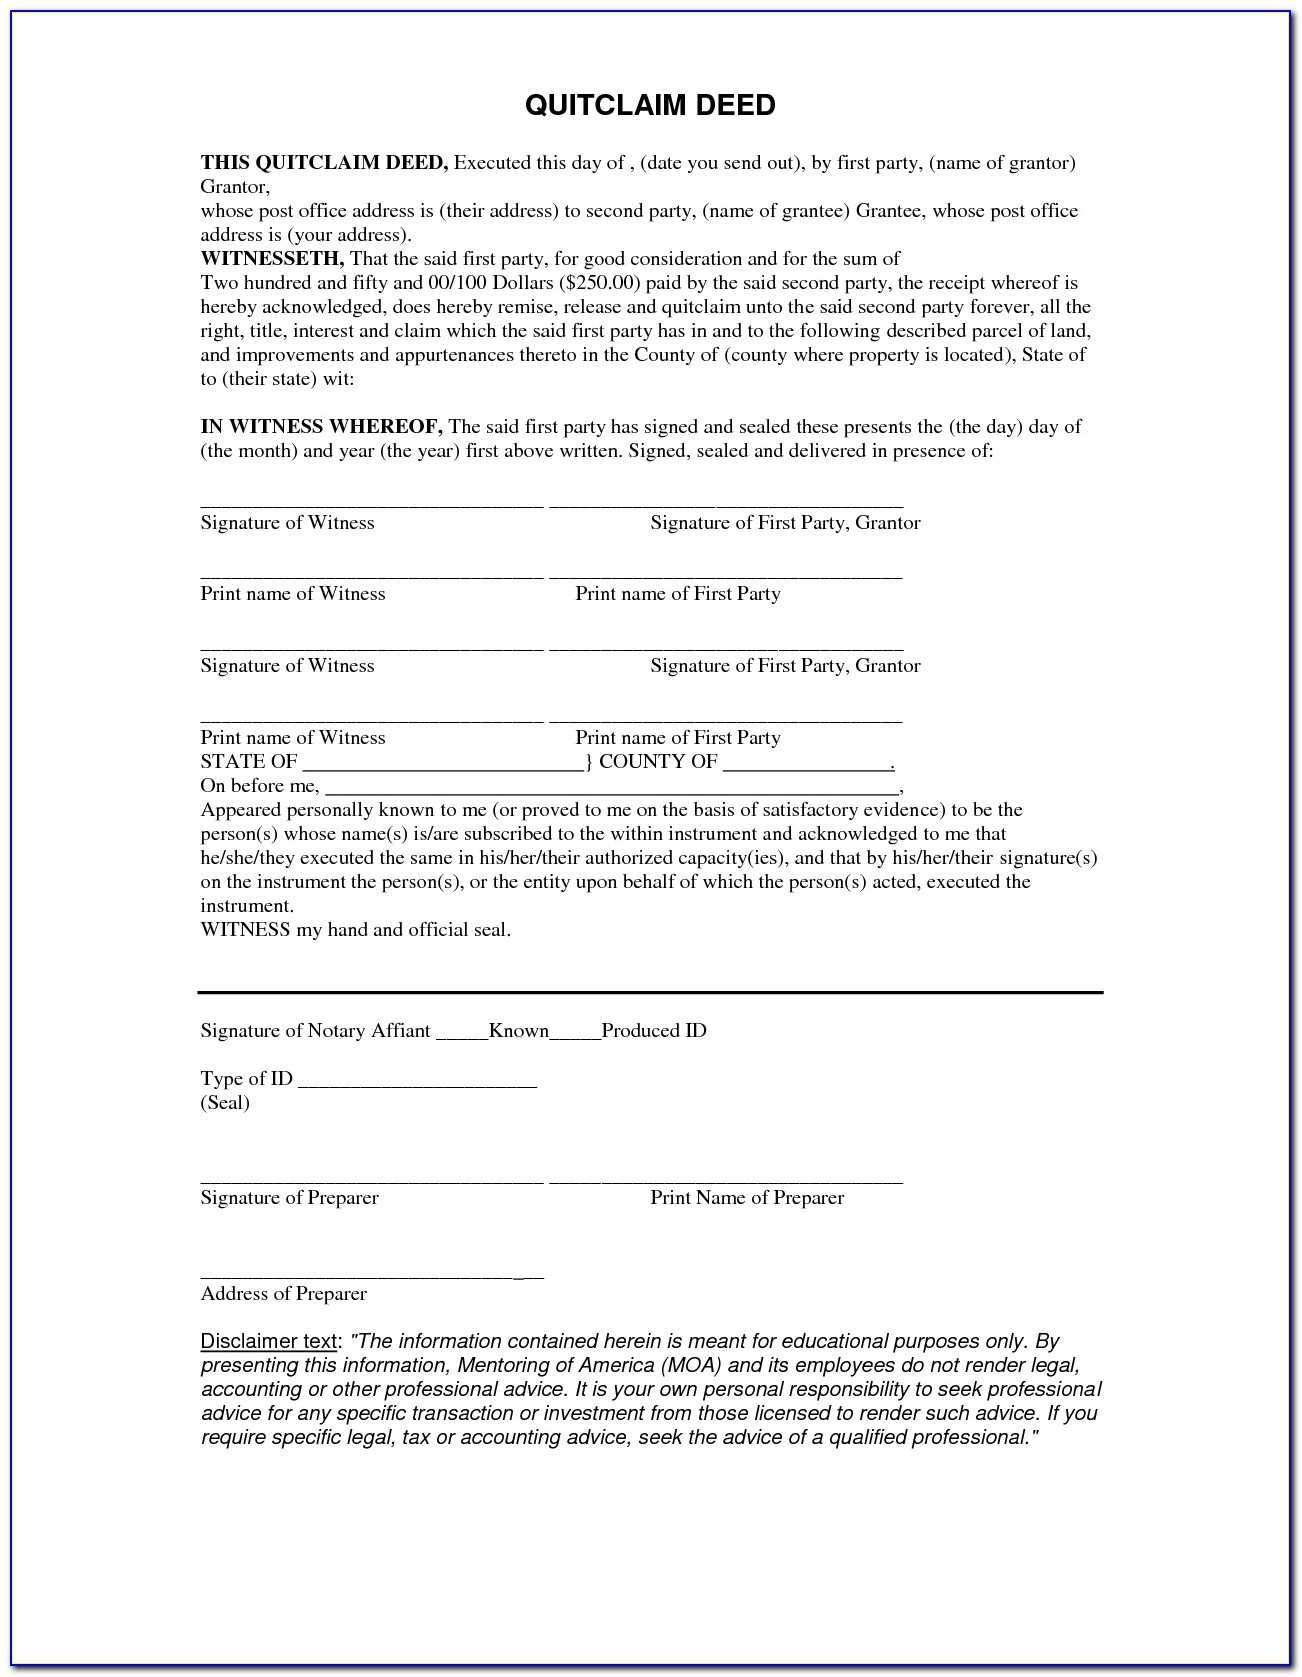 Quit Claim Deed Form Missouri Free - Form : Resume Examples #by21P45Mdn - Free Printable Quit Claim Deed Form Indiana